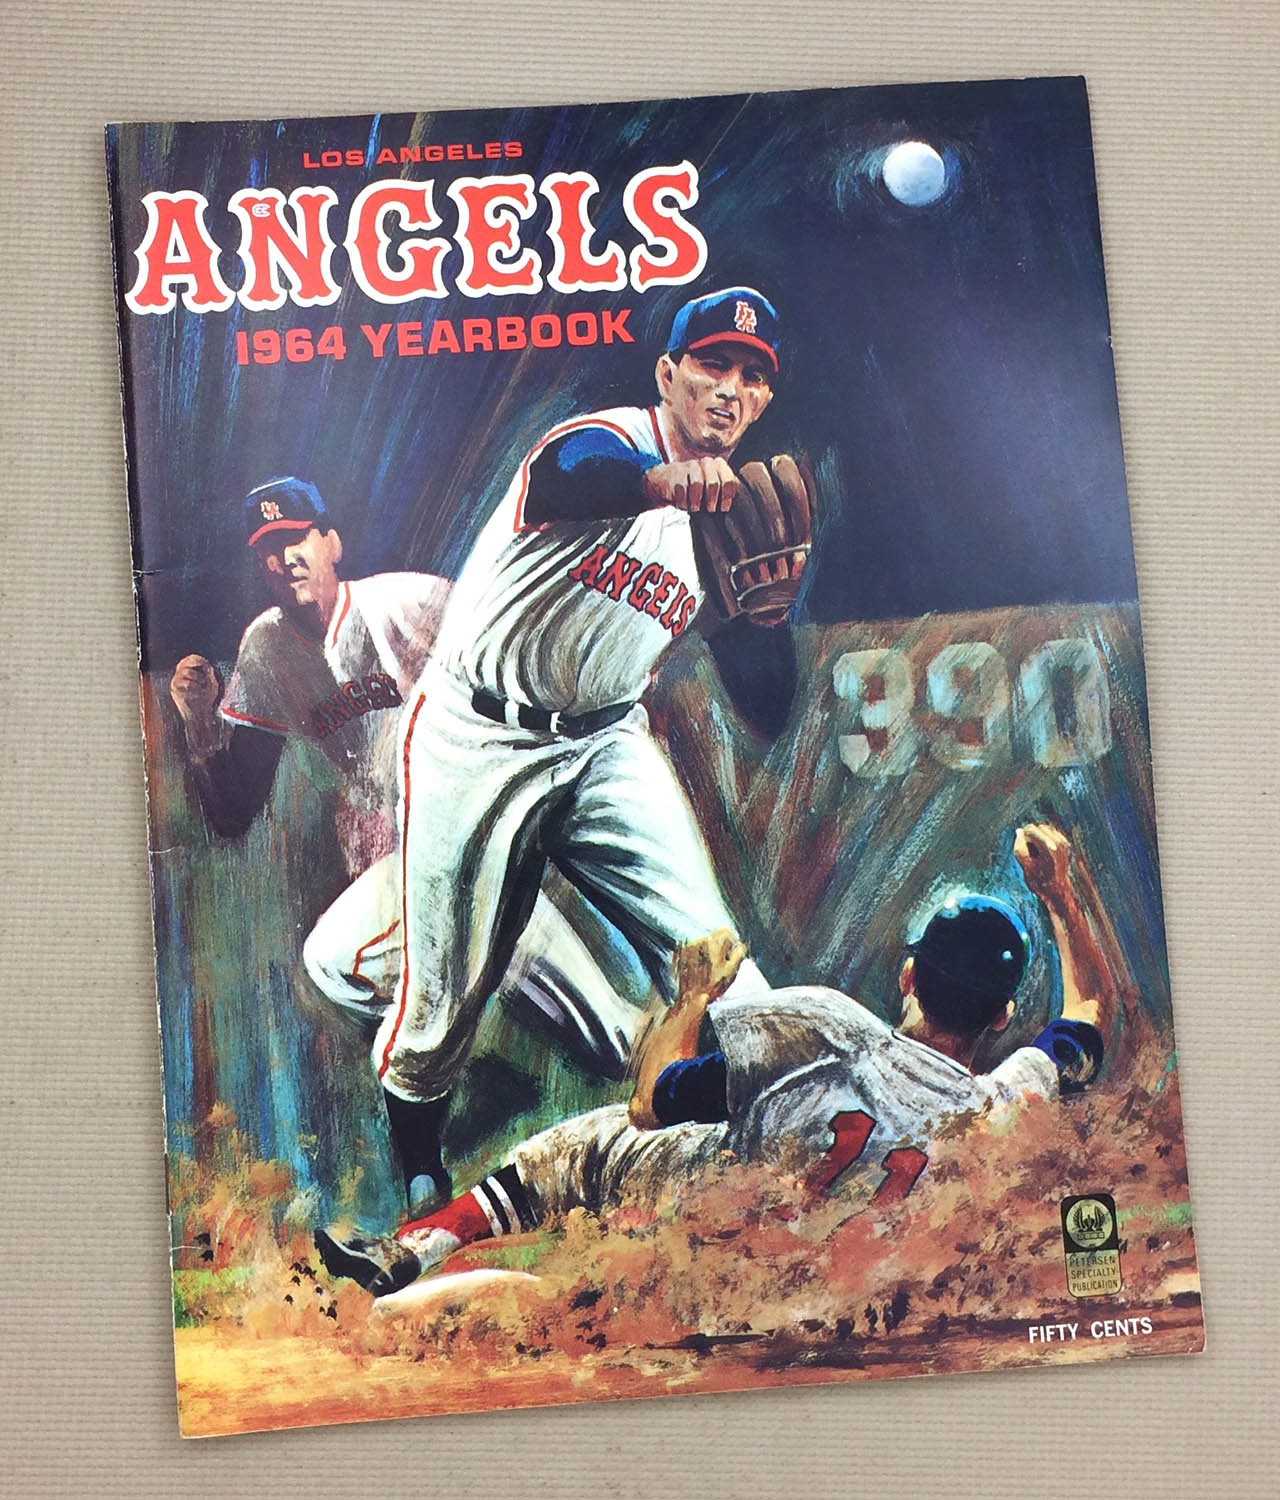 Los Angeles Angels 1964 Yearbook